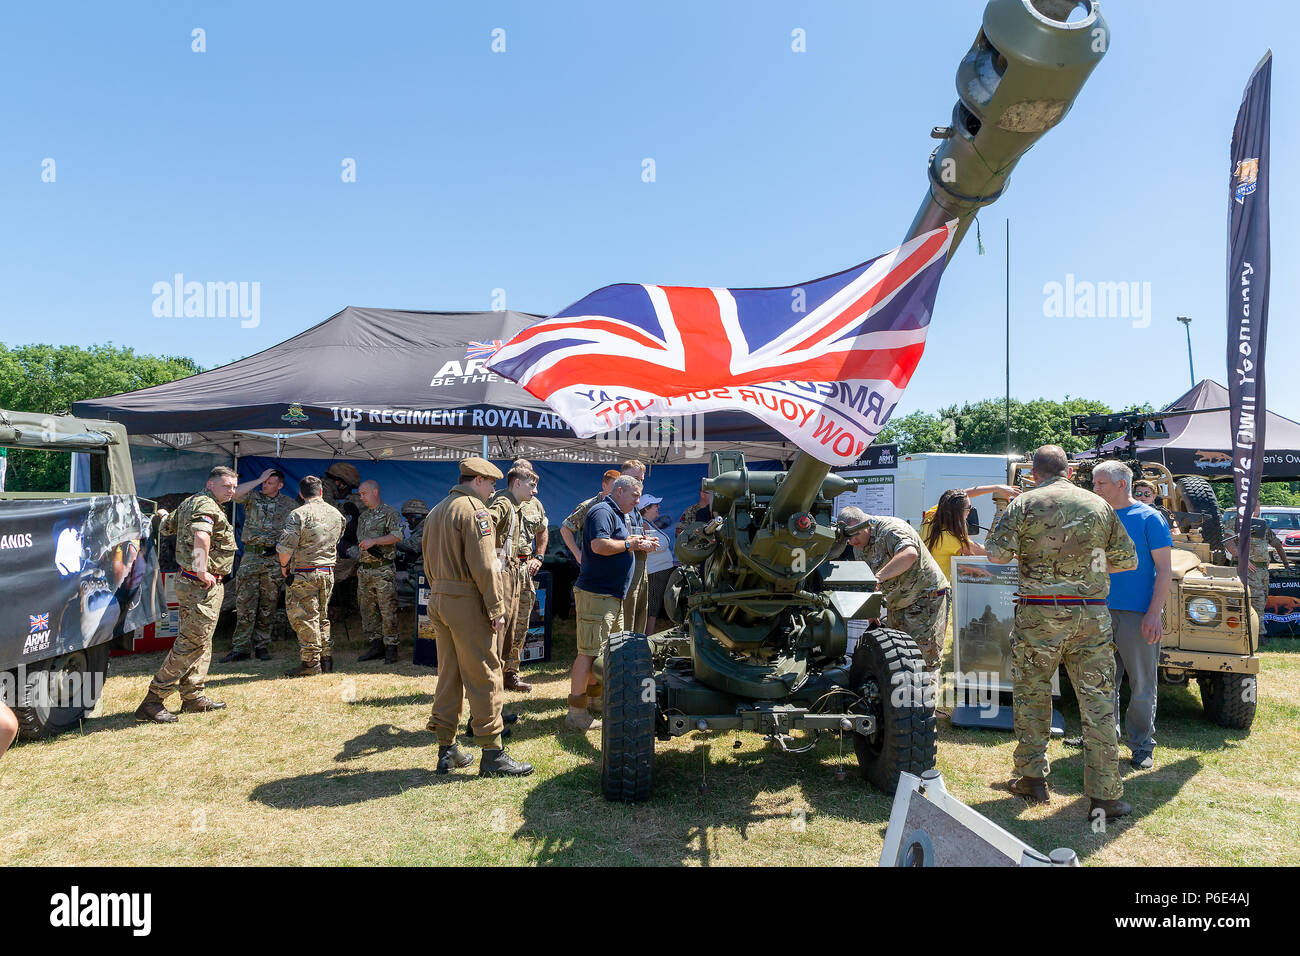 Warrington, UK, 30 June 2018 – Crosfields Rugby Amateur Rugby League Football Club Ground was the stage for the annual Armed Forces Day in Warrington. This was the 9th Annual Tom Sephton Memorial Trophy festival where various community groups, emergency services and Rugby organisations and charities provided interesting and engaging activities that added to the festival atmosphere of the event Stock Photo